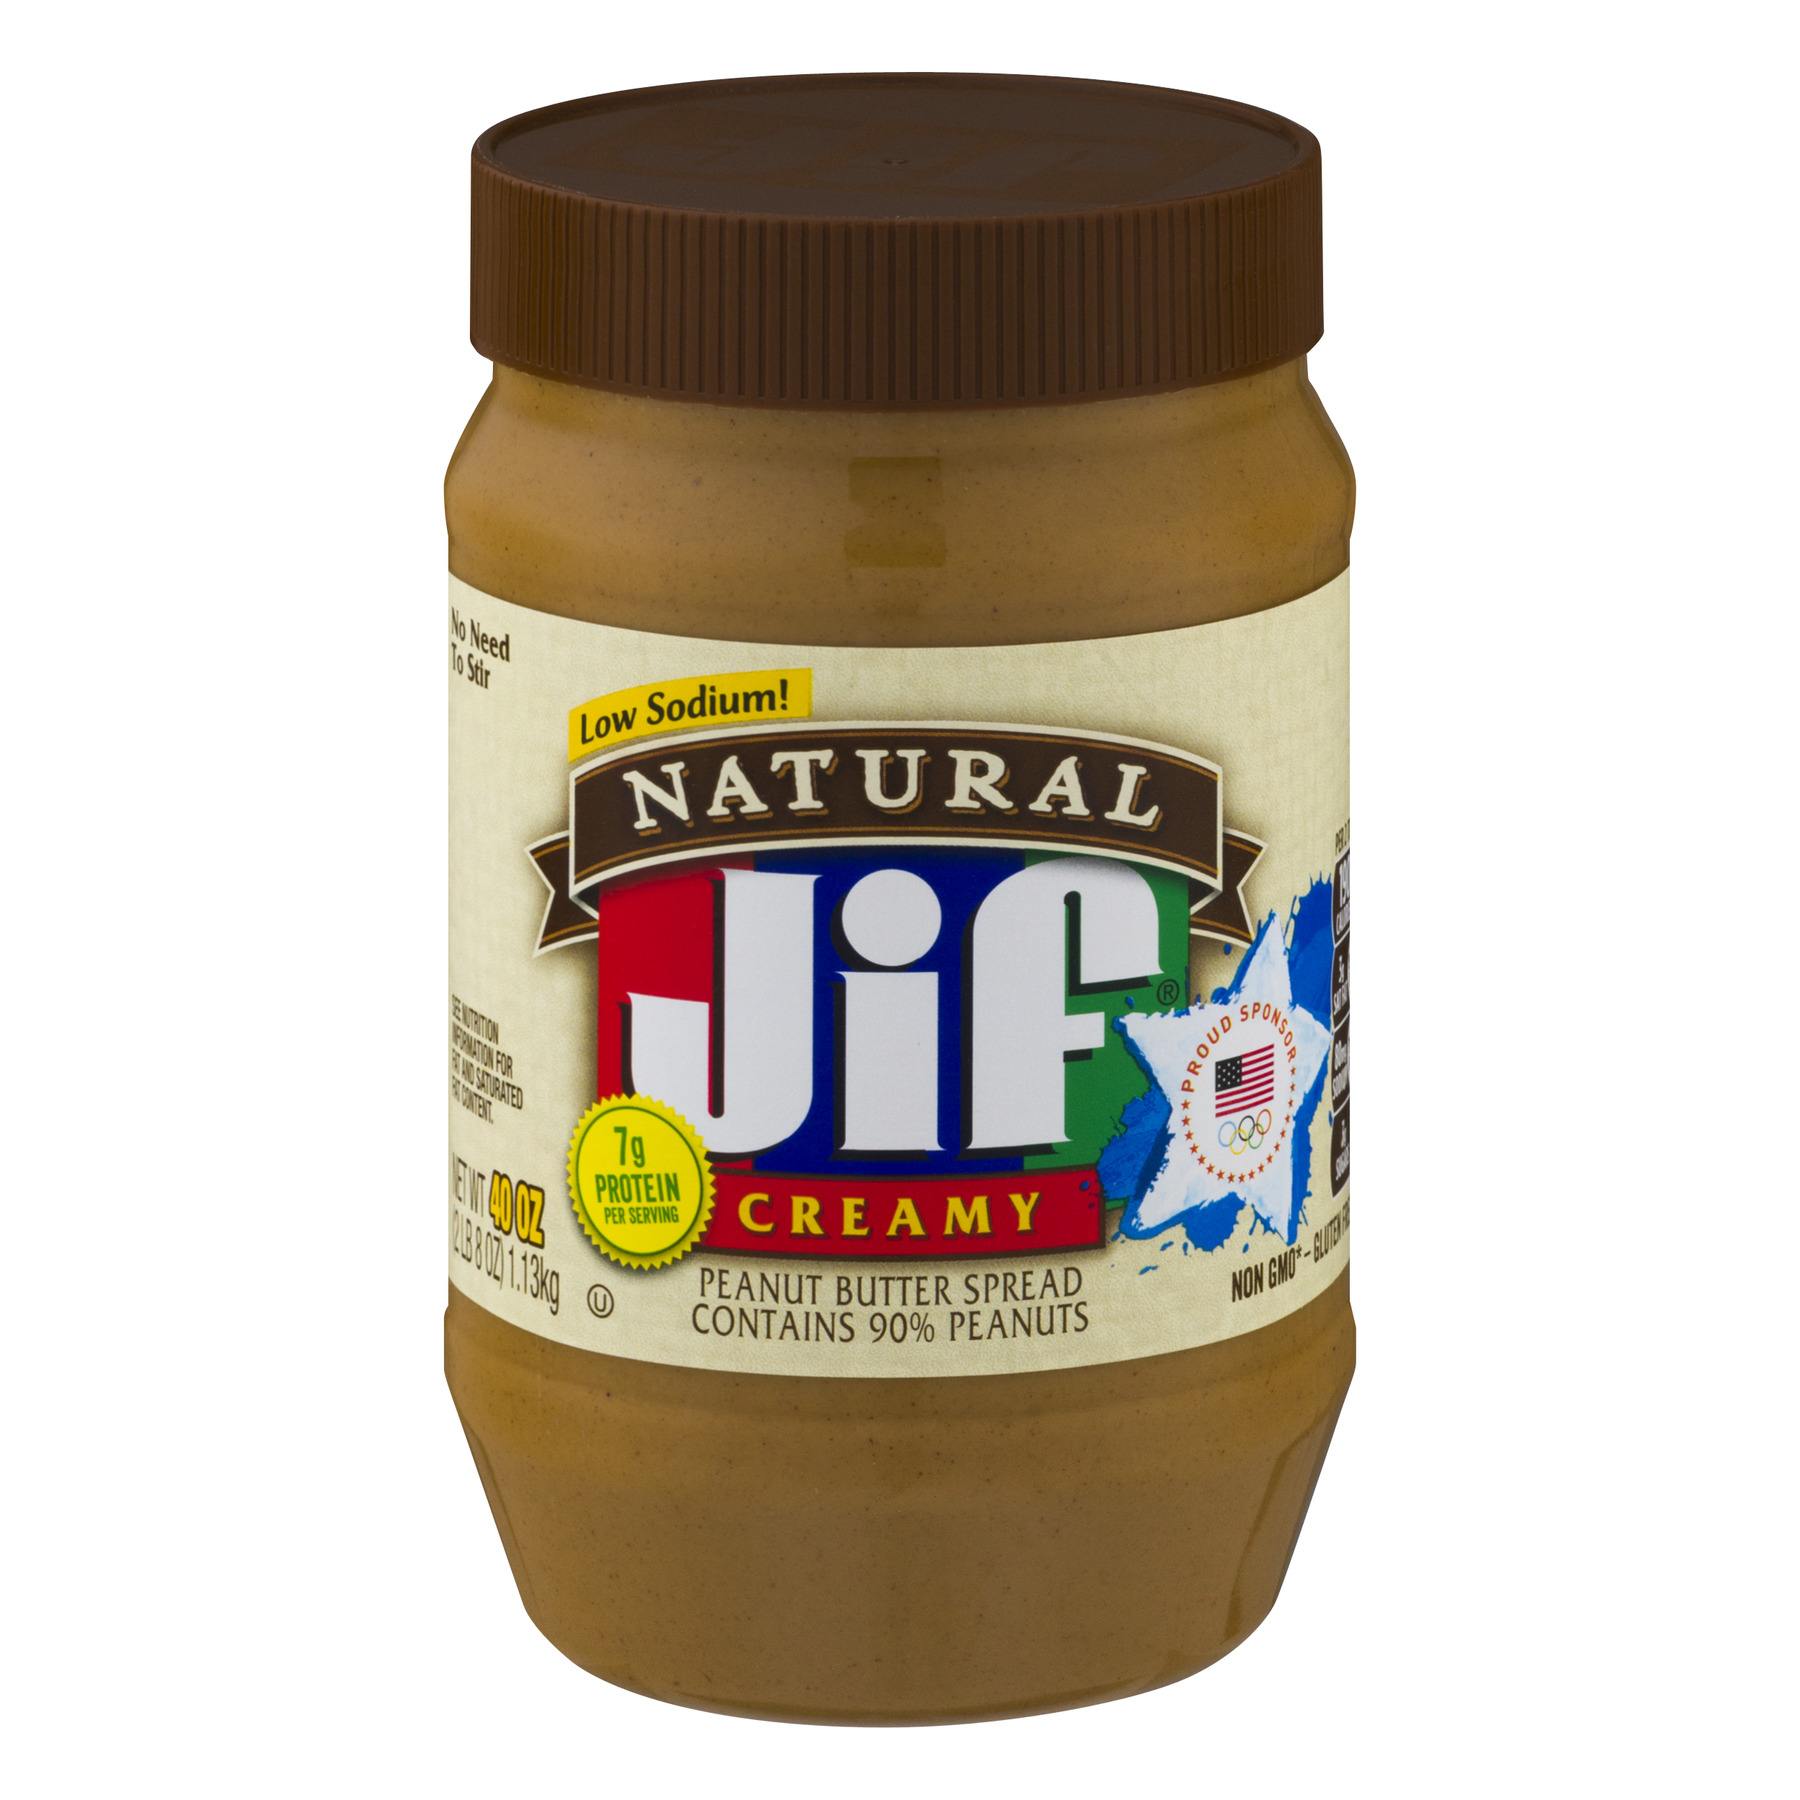 Jif Natural Low Sodium Creamy Peanut Butter, 40 oz